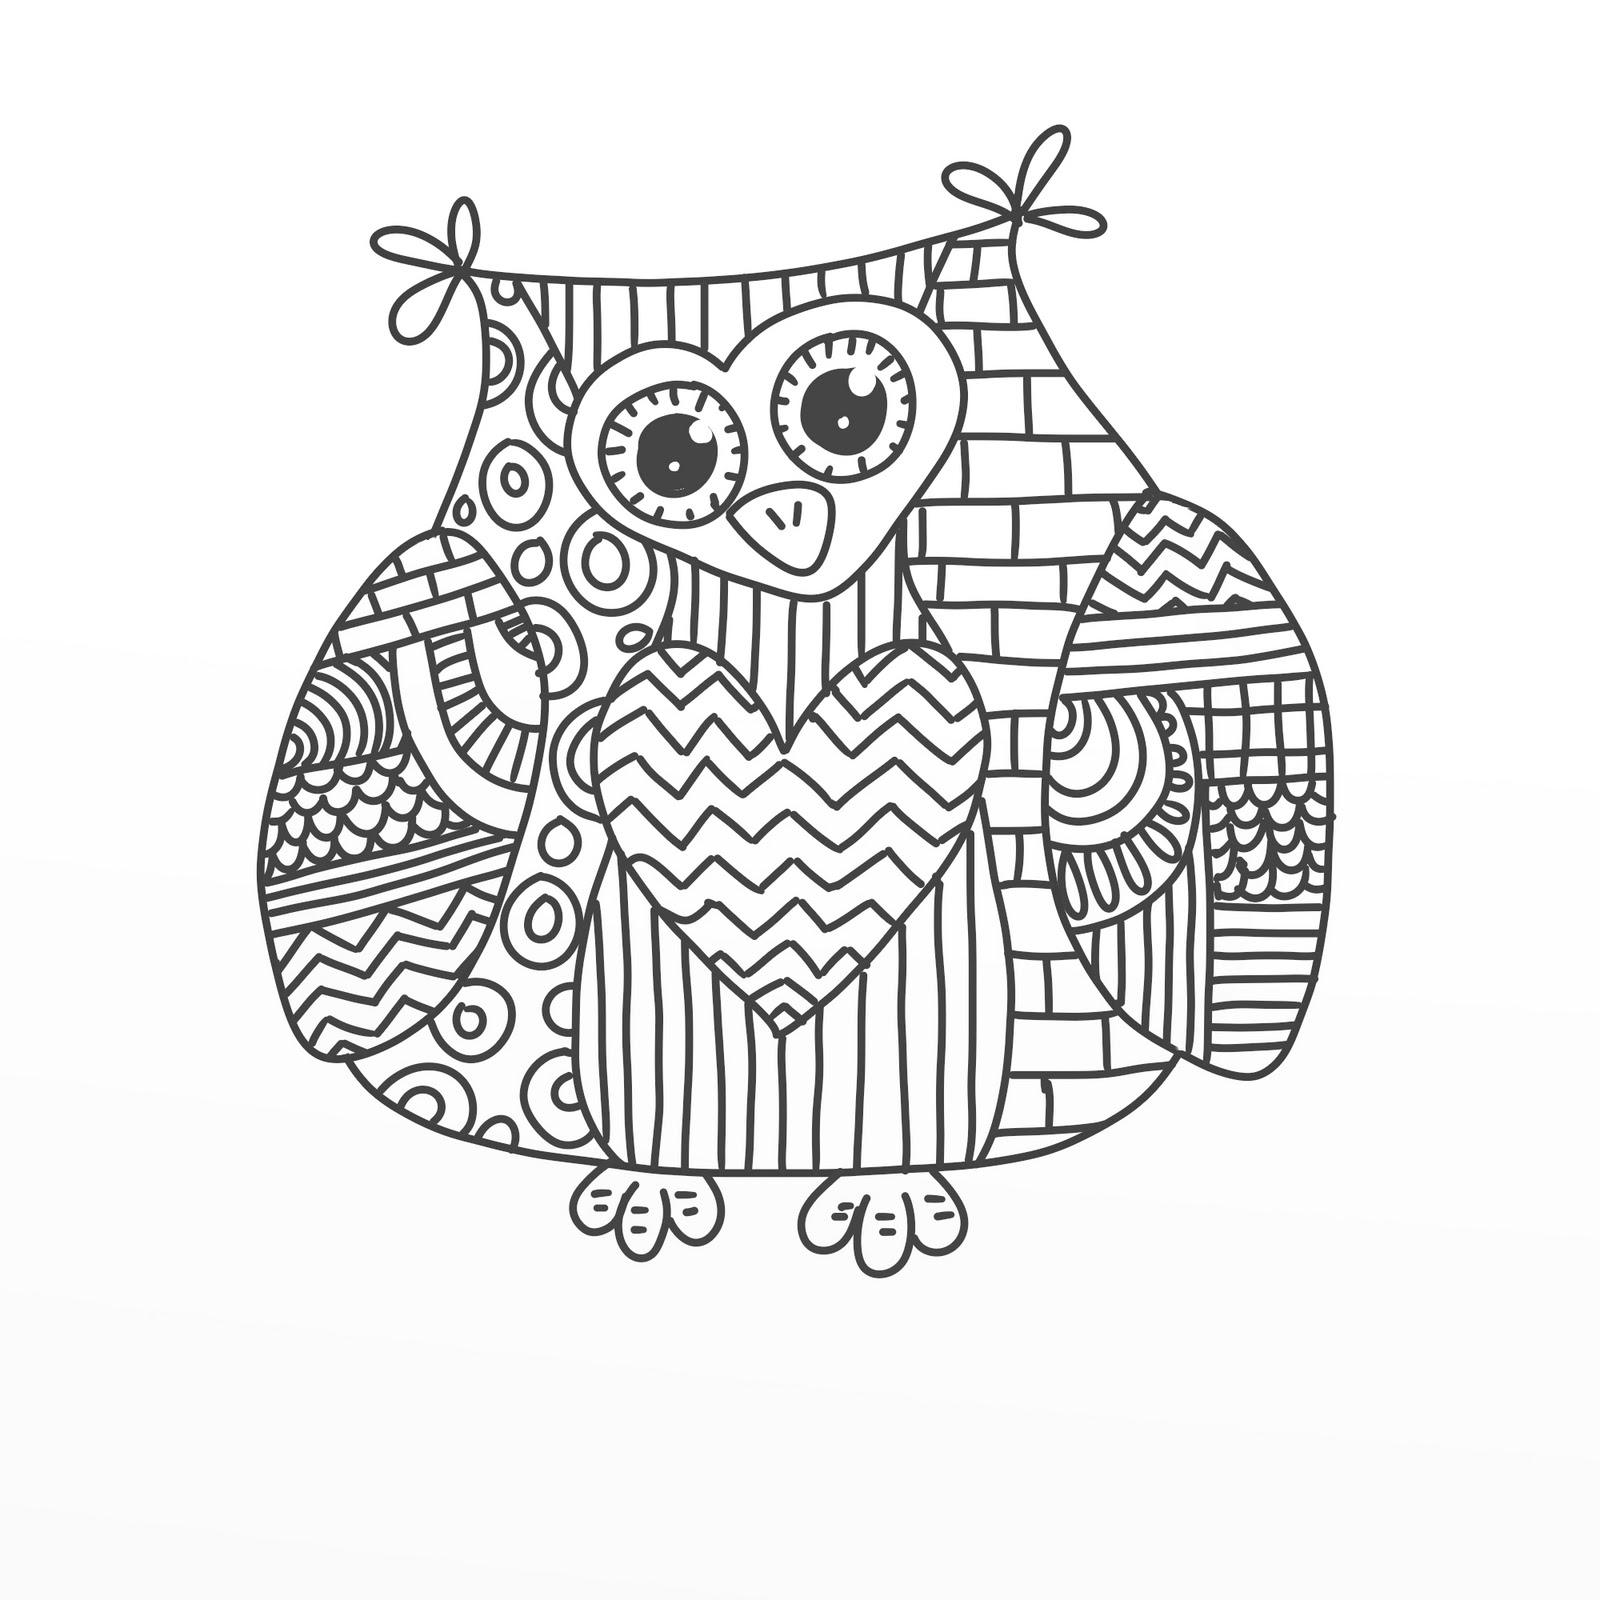 1600x1600 Trendy Inspiration Ideas Feelings Coloring Pages Anxious Doodle